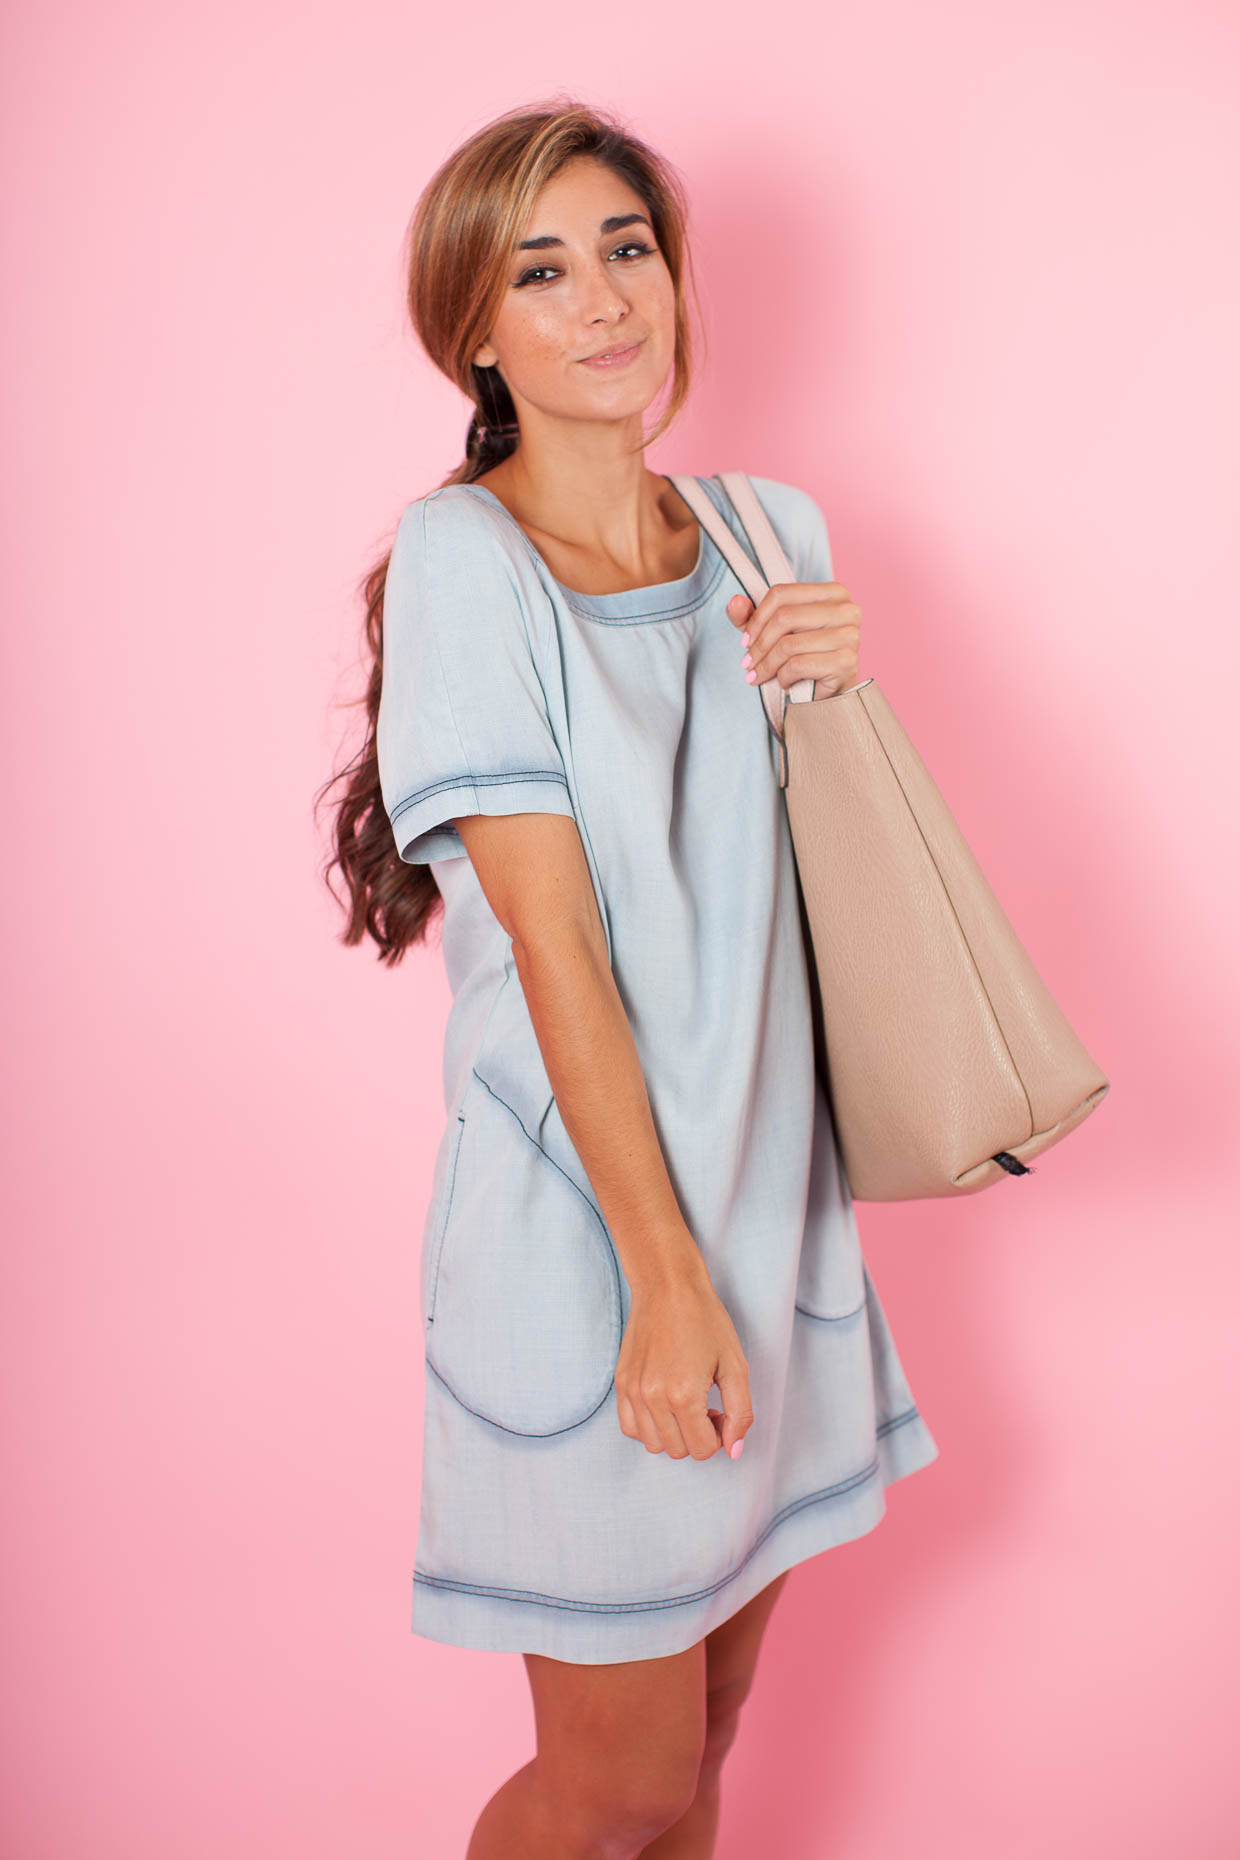 d54072c3a79 Fashion Blogger The Darling Detail is wearing the Tart Kathy Chambray Dress  from Nordstrom Rack